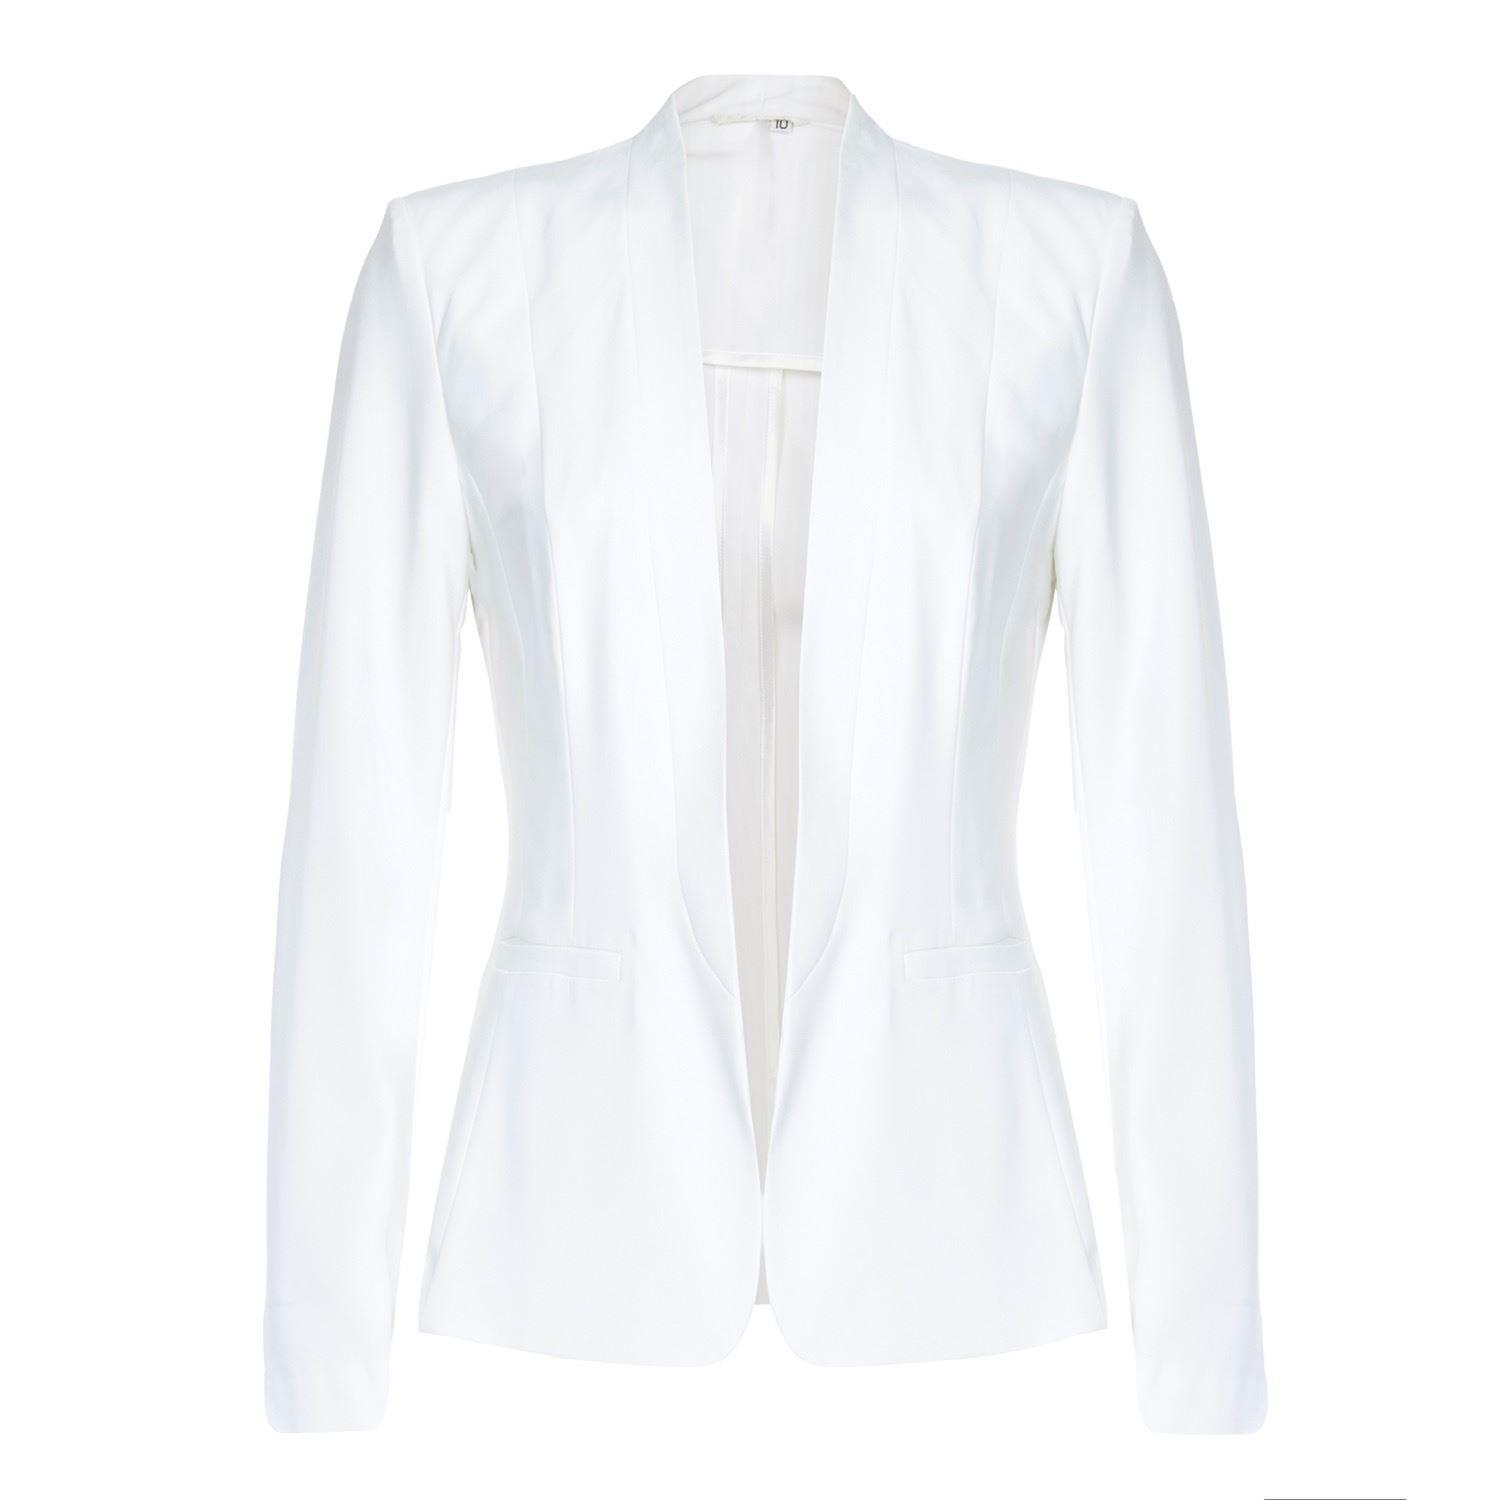 Anastasia - Womens White  Unlined Spring Blazer Jacket